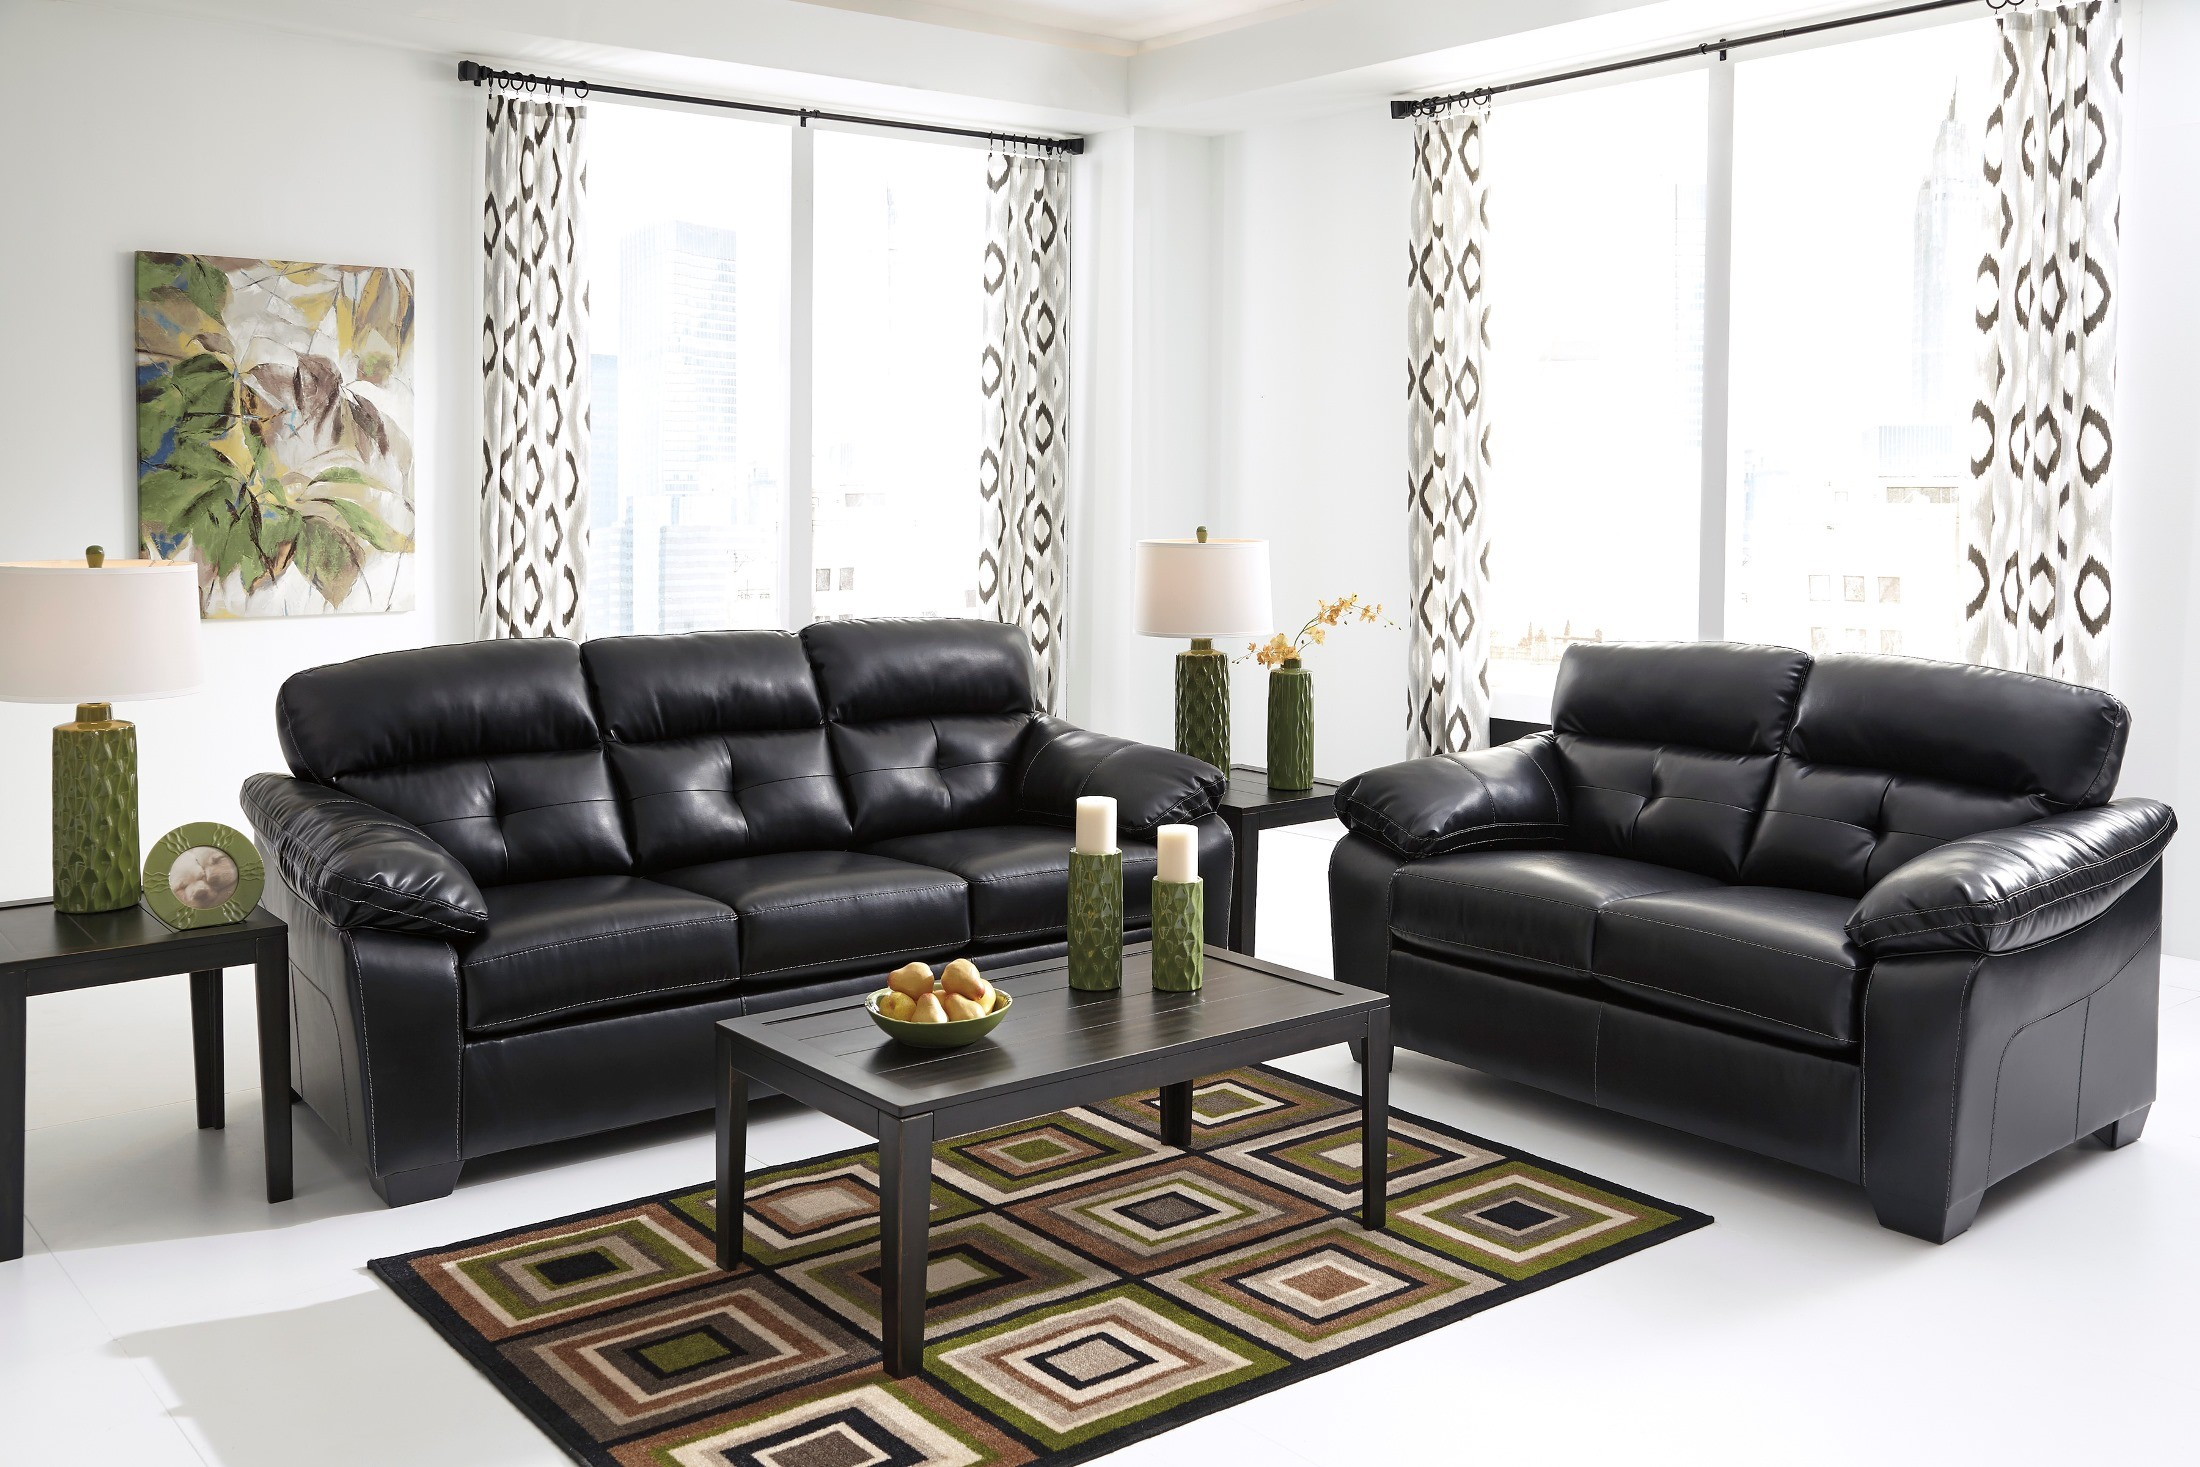 Bastrop Durablend Midnight Living Room Set from Ashley (44601-38-35 ...